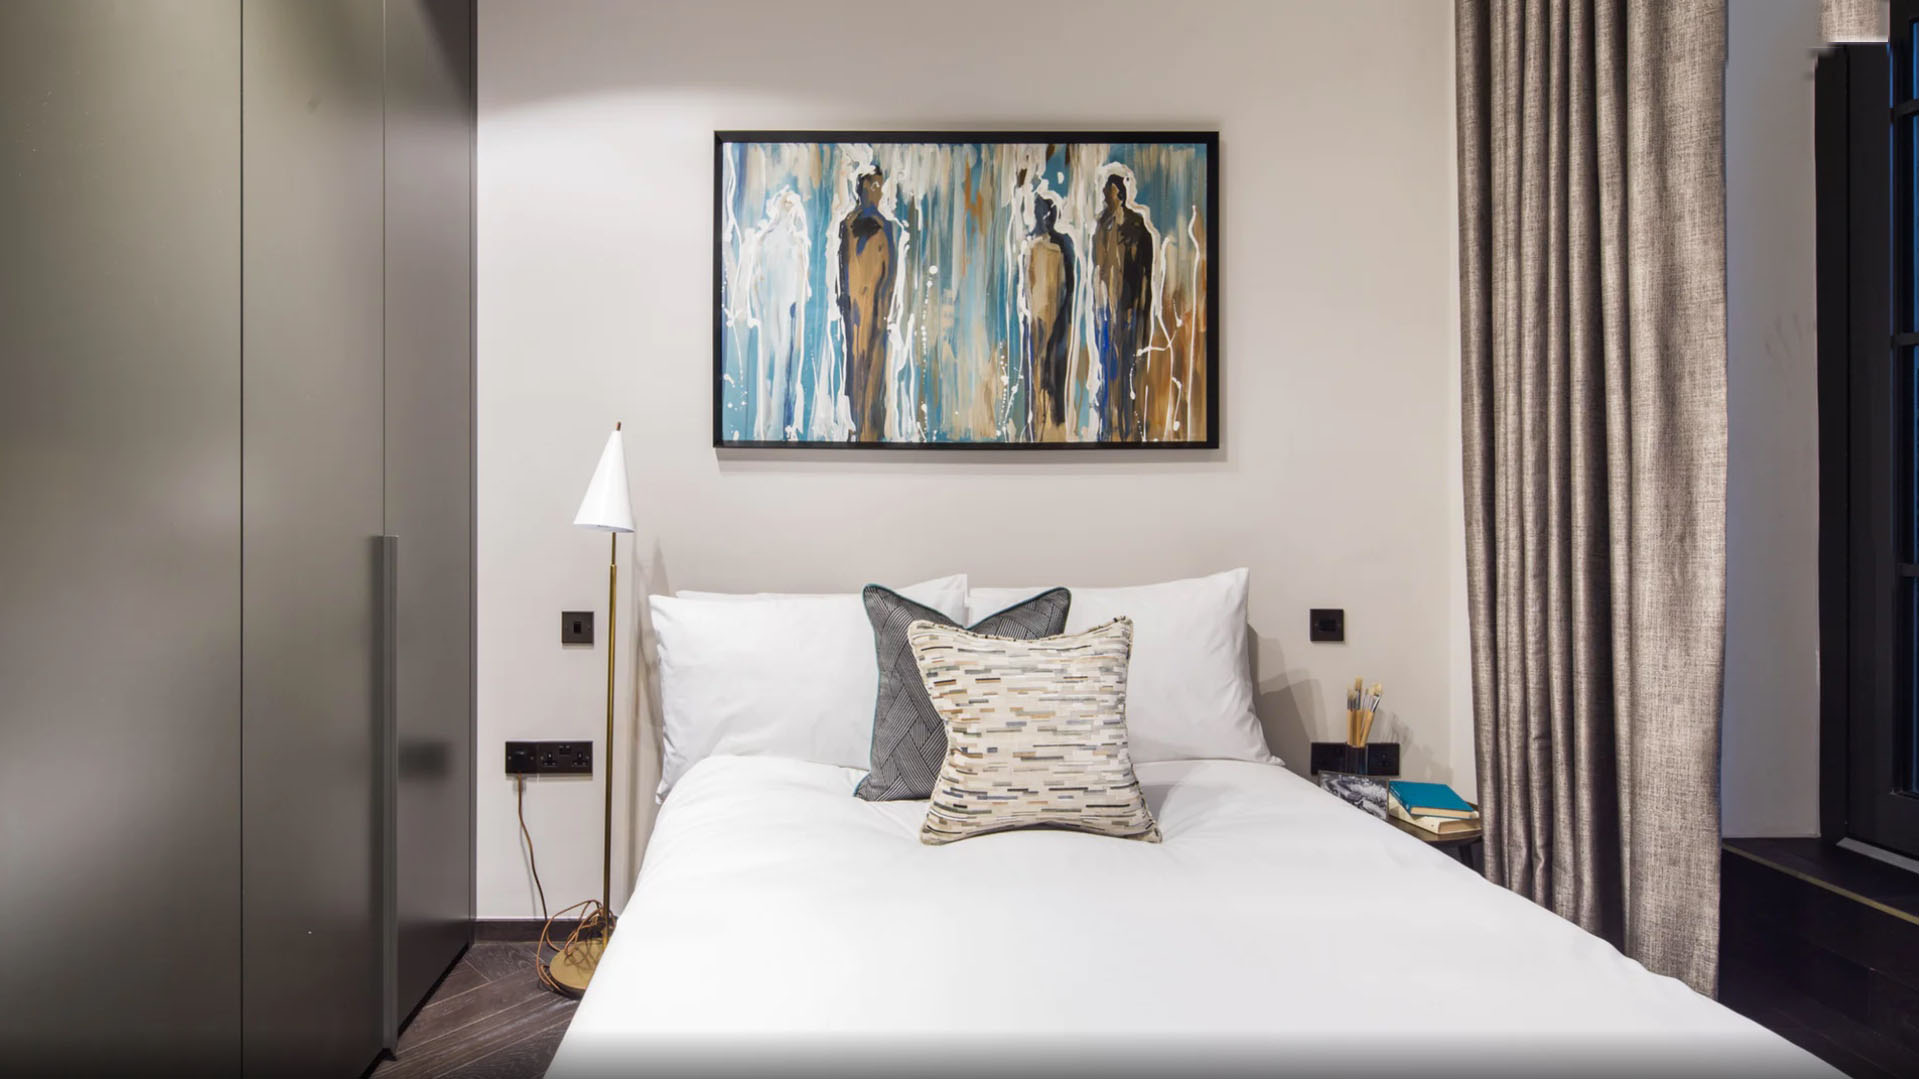 Lovelydays luxury service apartment rental - London - Soho - Berwick Street I - Lovelysuite - 3 bedrooms - 3 bathrooms - Double bed - ae72dbdce3ad - Lovelydays